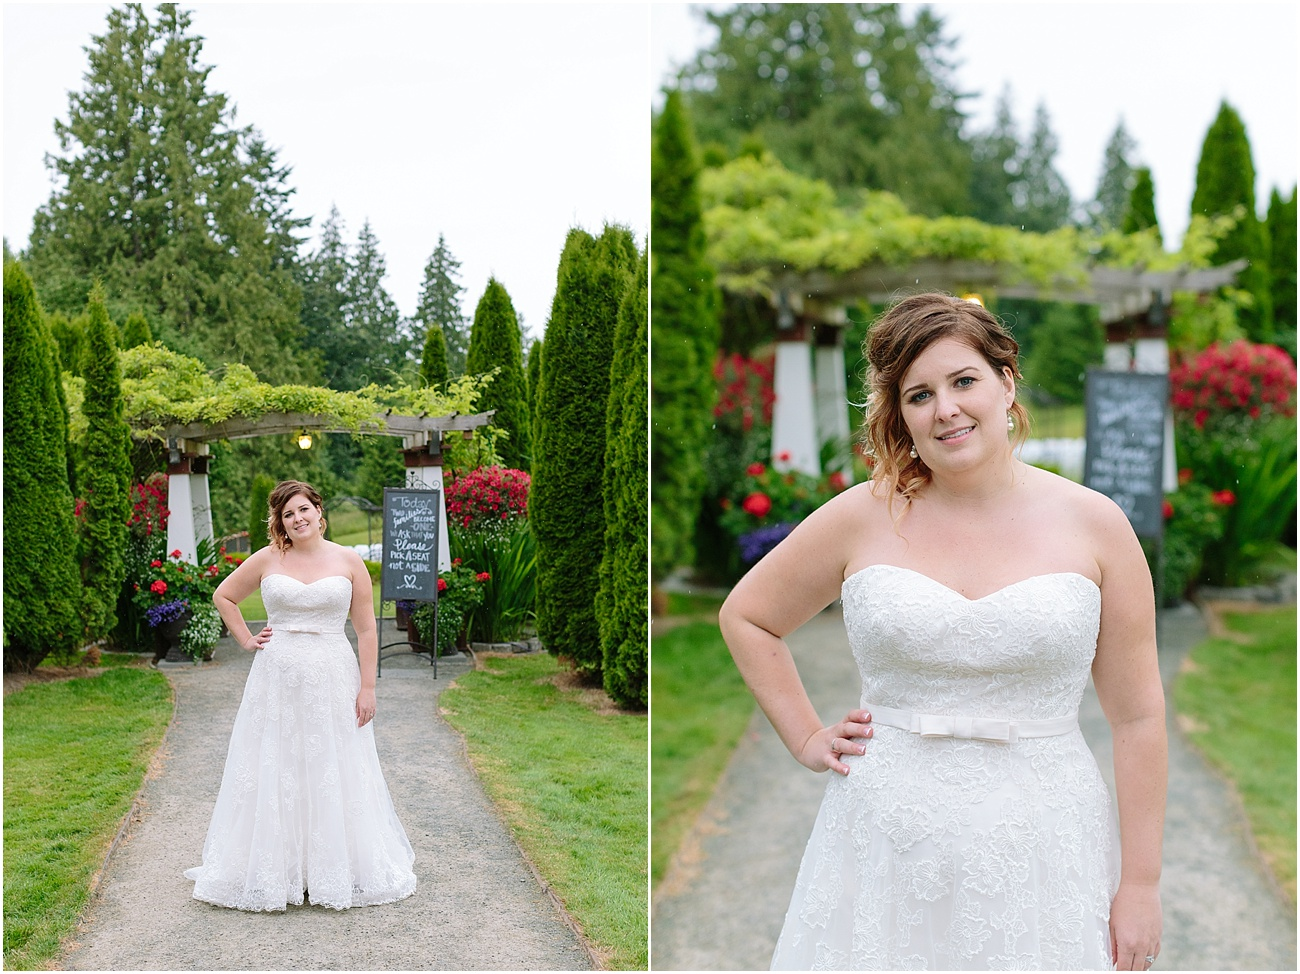 Tauzin_Wedding_Tazer_Valley_Farm_Stanwood_Washington__0064